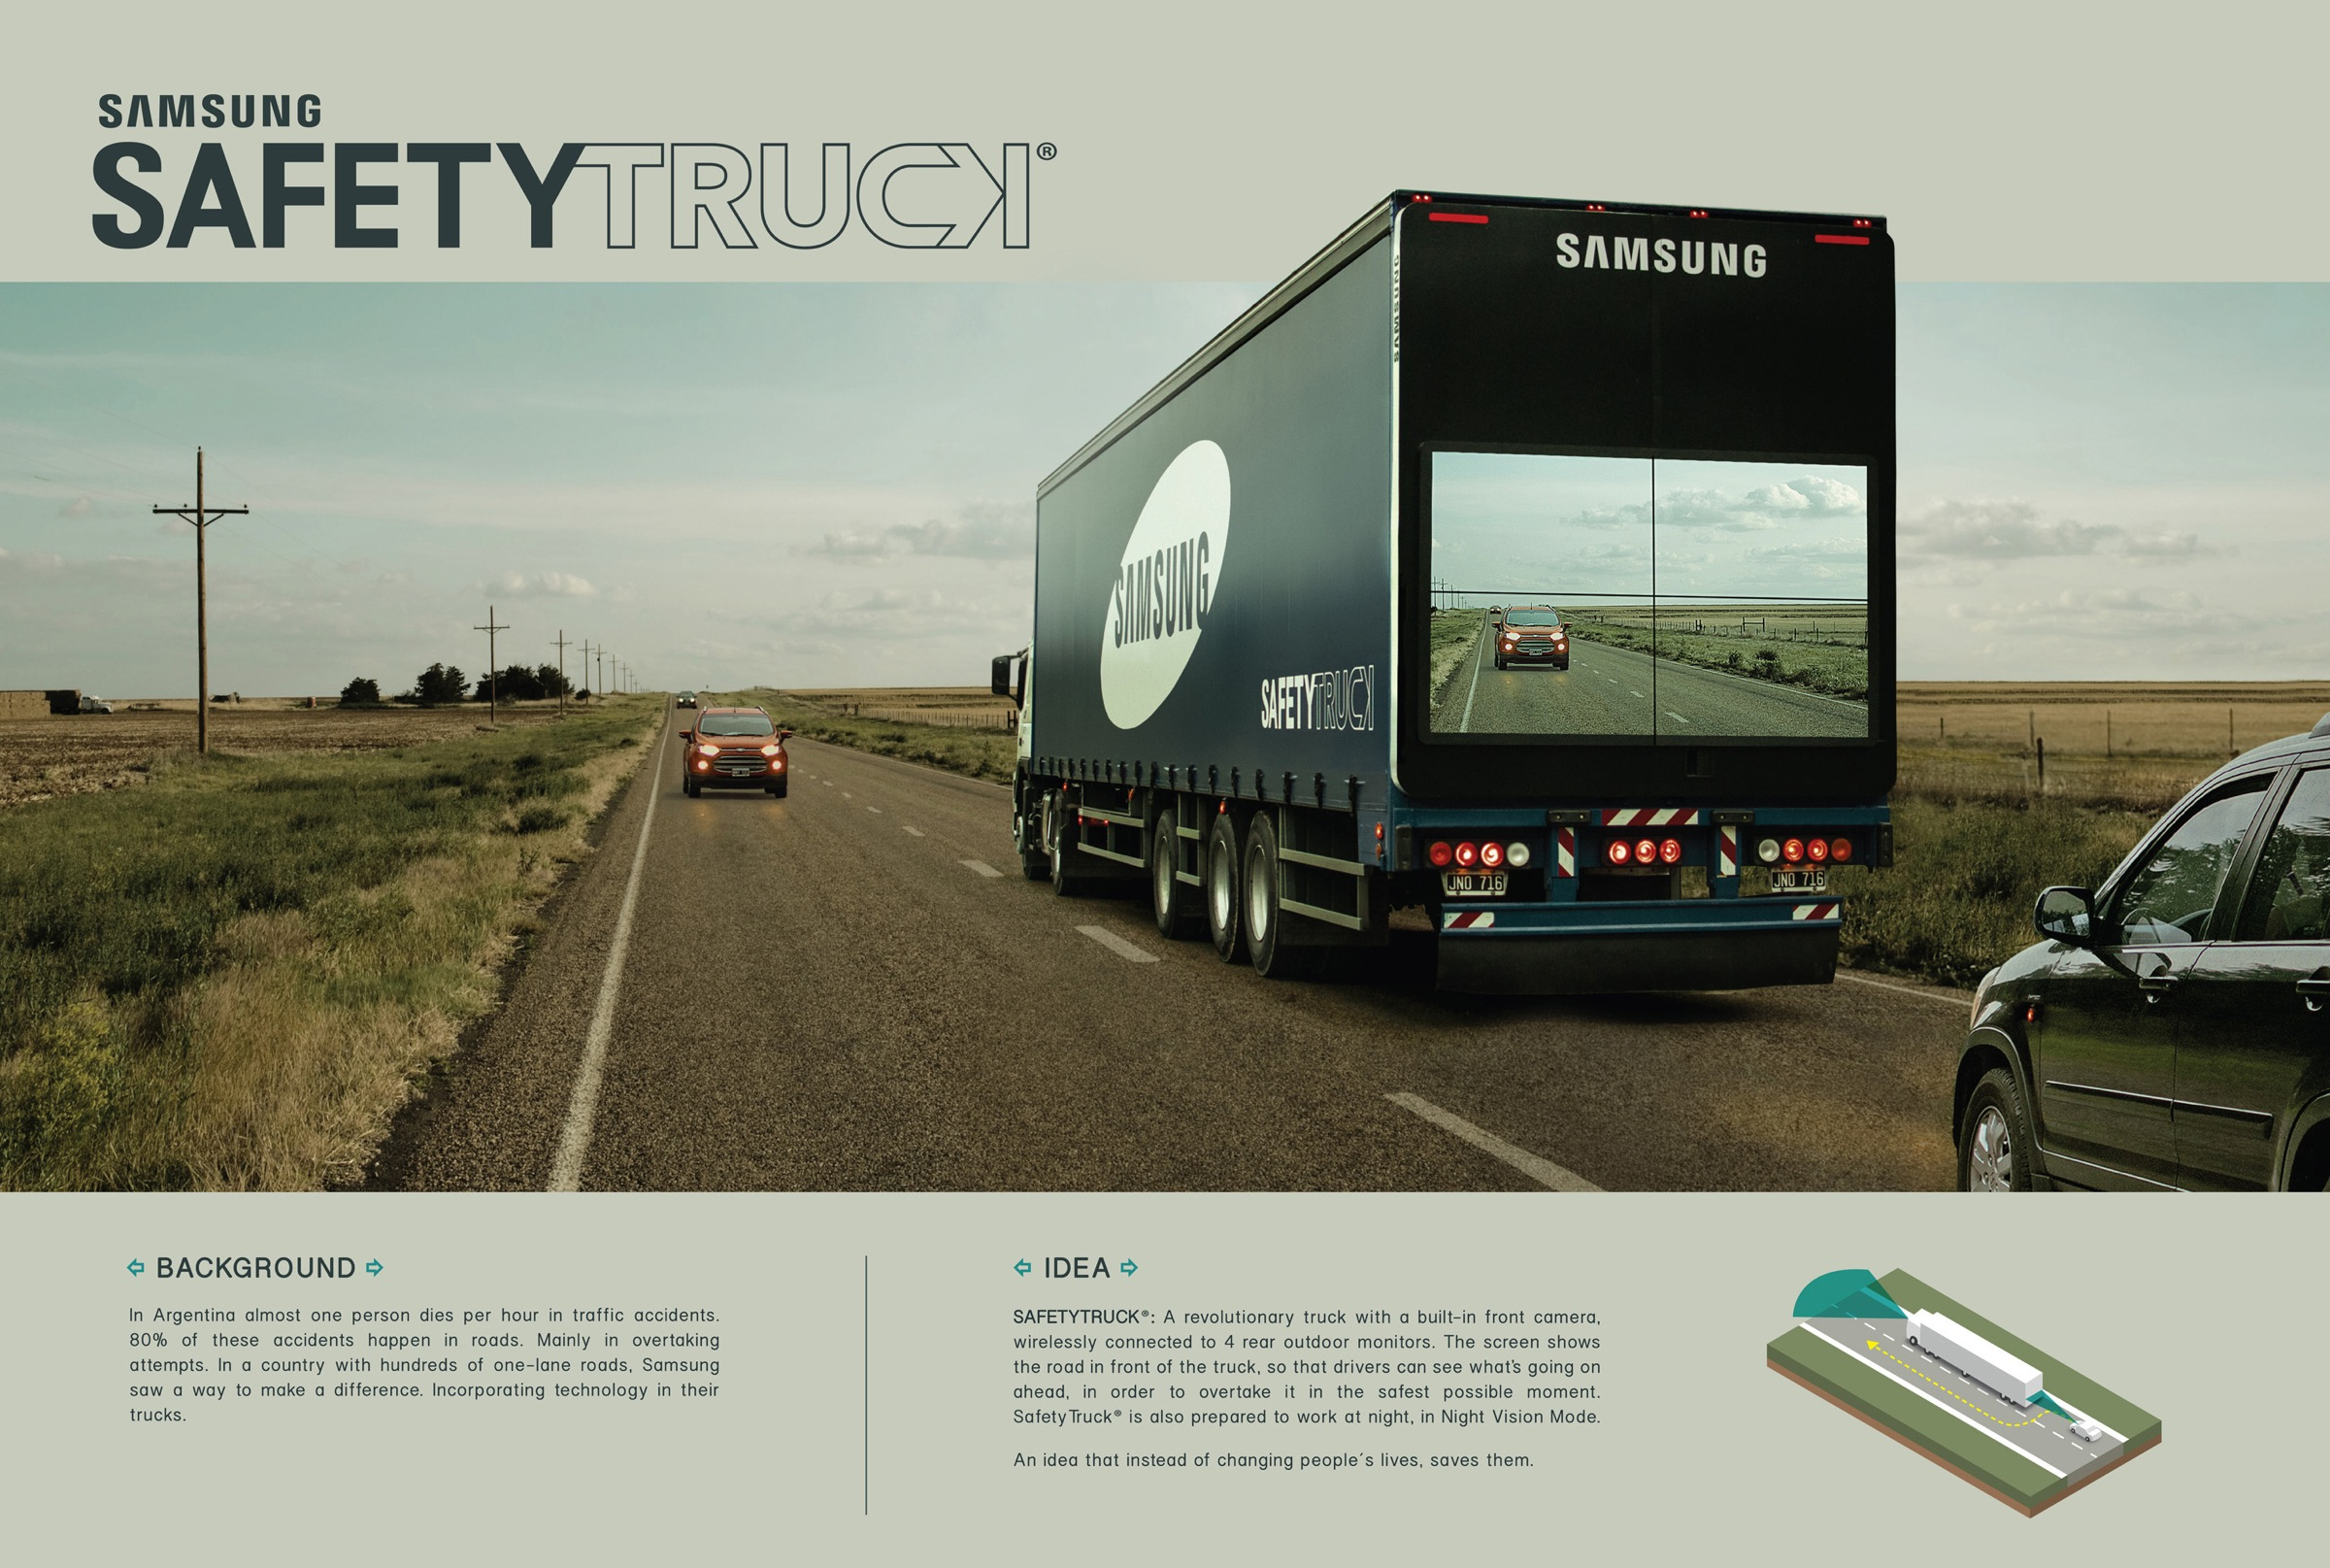 samsung-safety-truck-print-outdoor-leo-burnett-argentina-camera-back-best-print-ads-2015-gunn-report-1